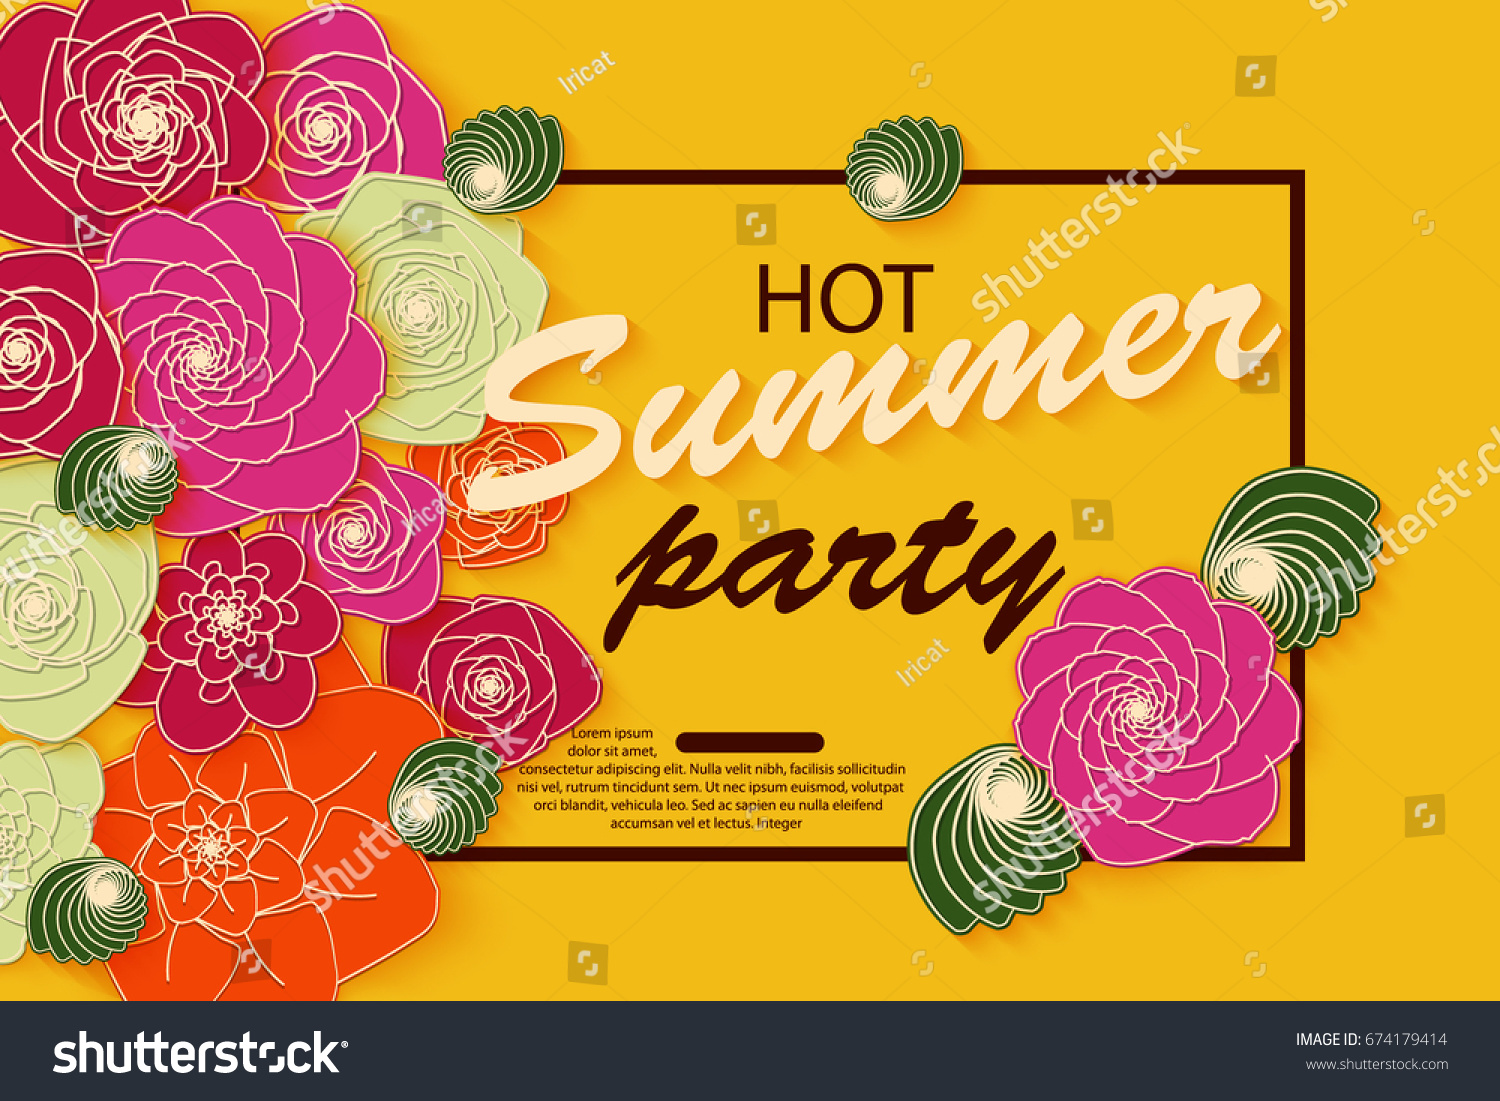 Summer banner design bright paper flowers stock vector 674179414 summer banner design with bright paper flowers for party for online shopping advertising actions dhlflorist Image collections